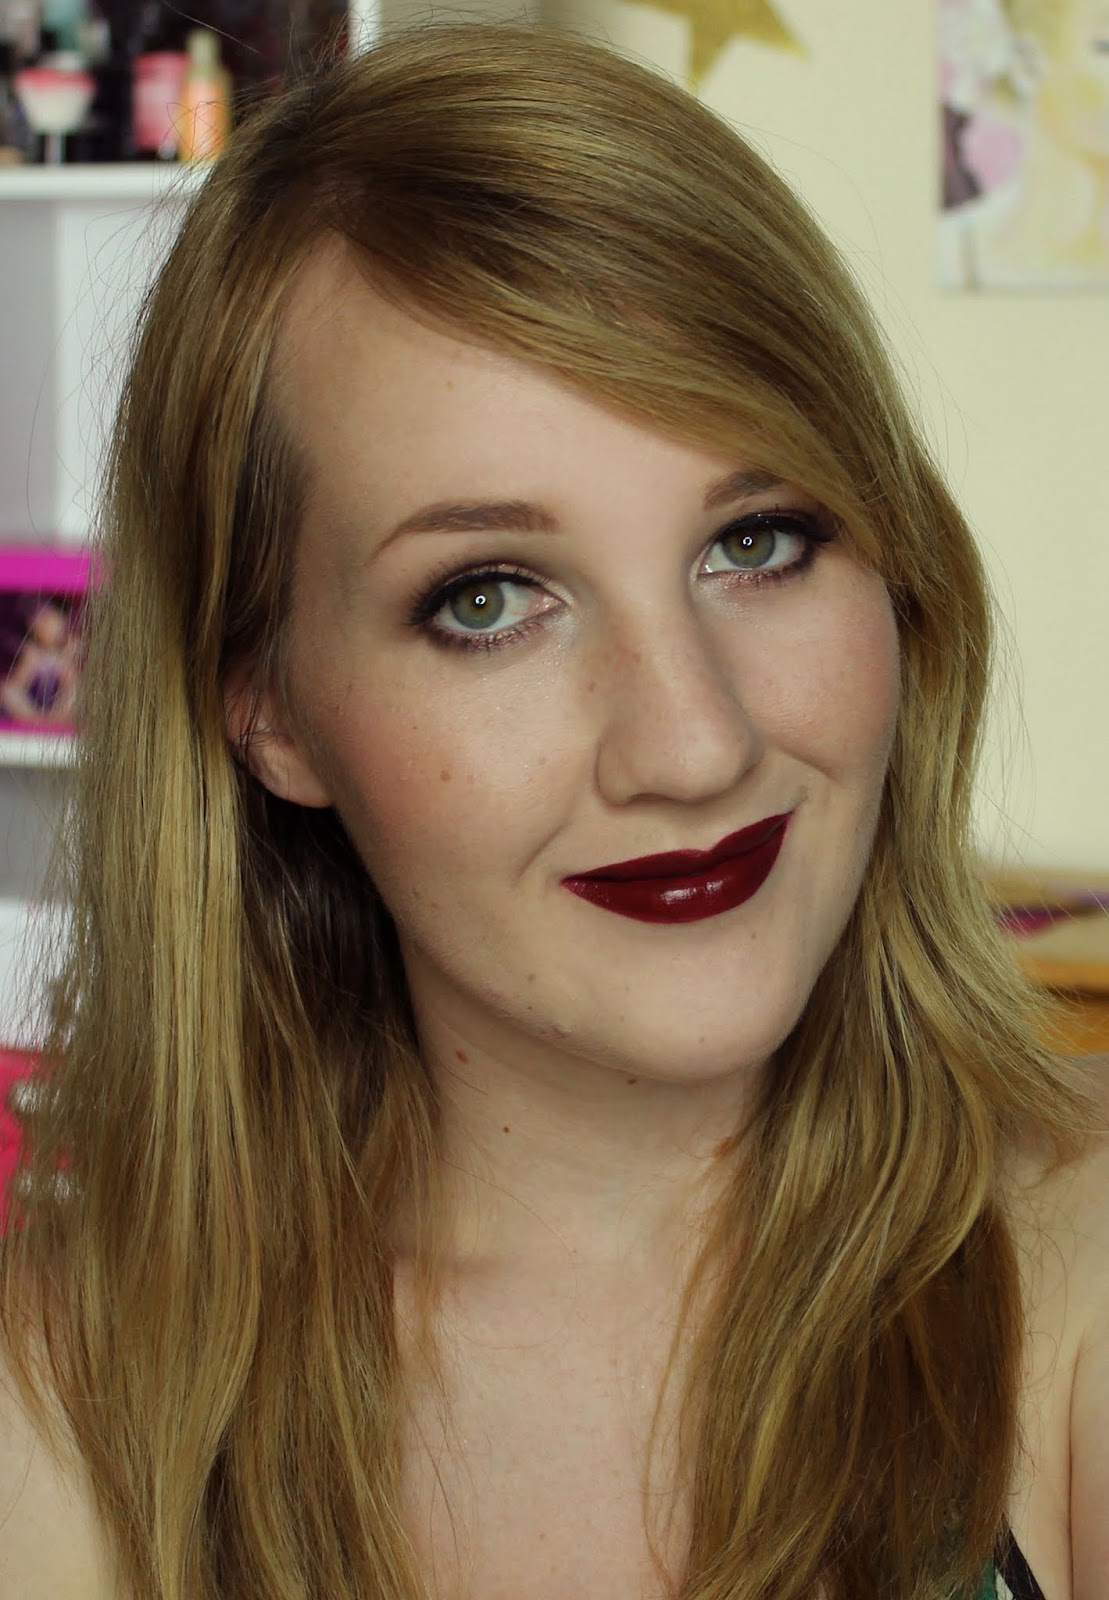 Wet n Wild Megalast Lip Color - Cherry Bomb swatch & review